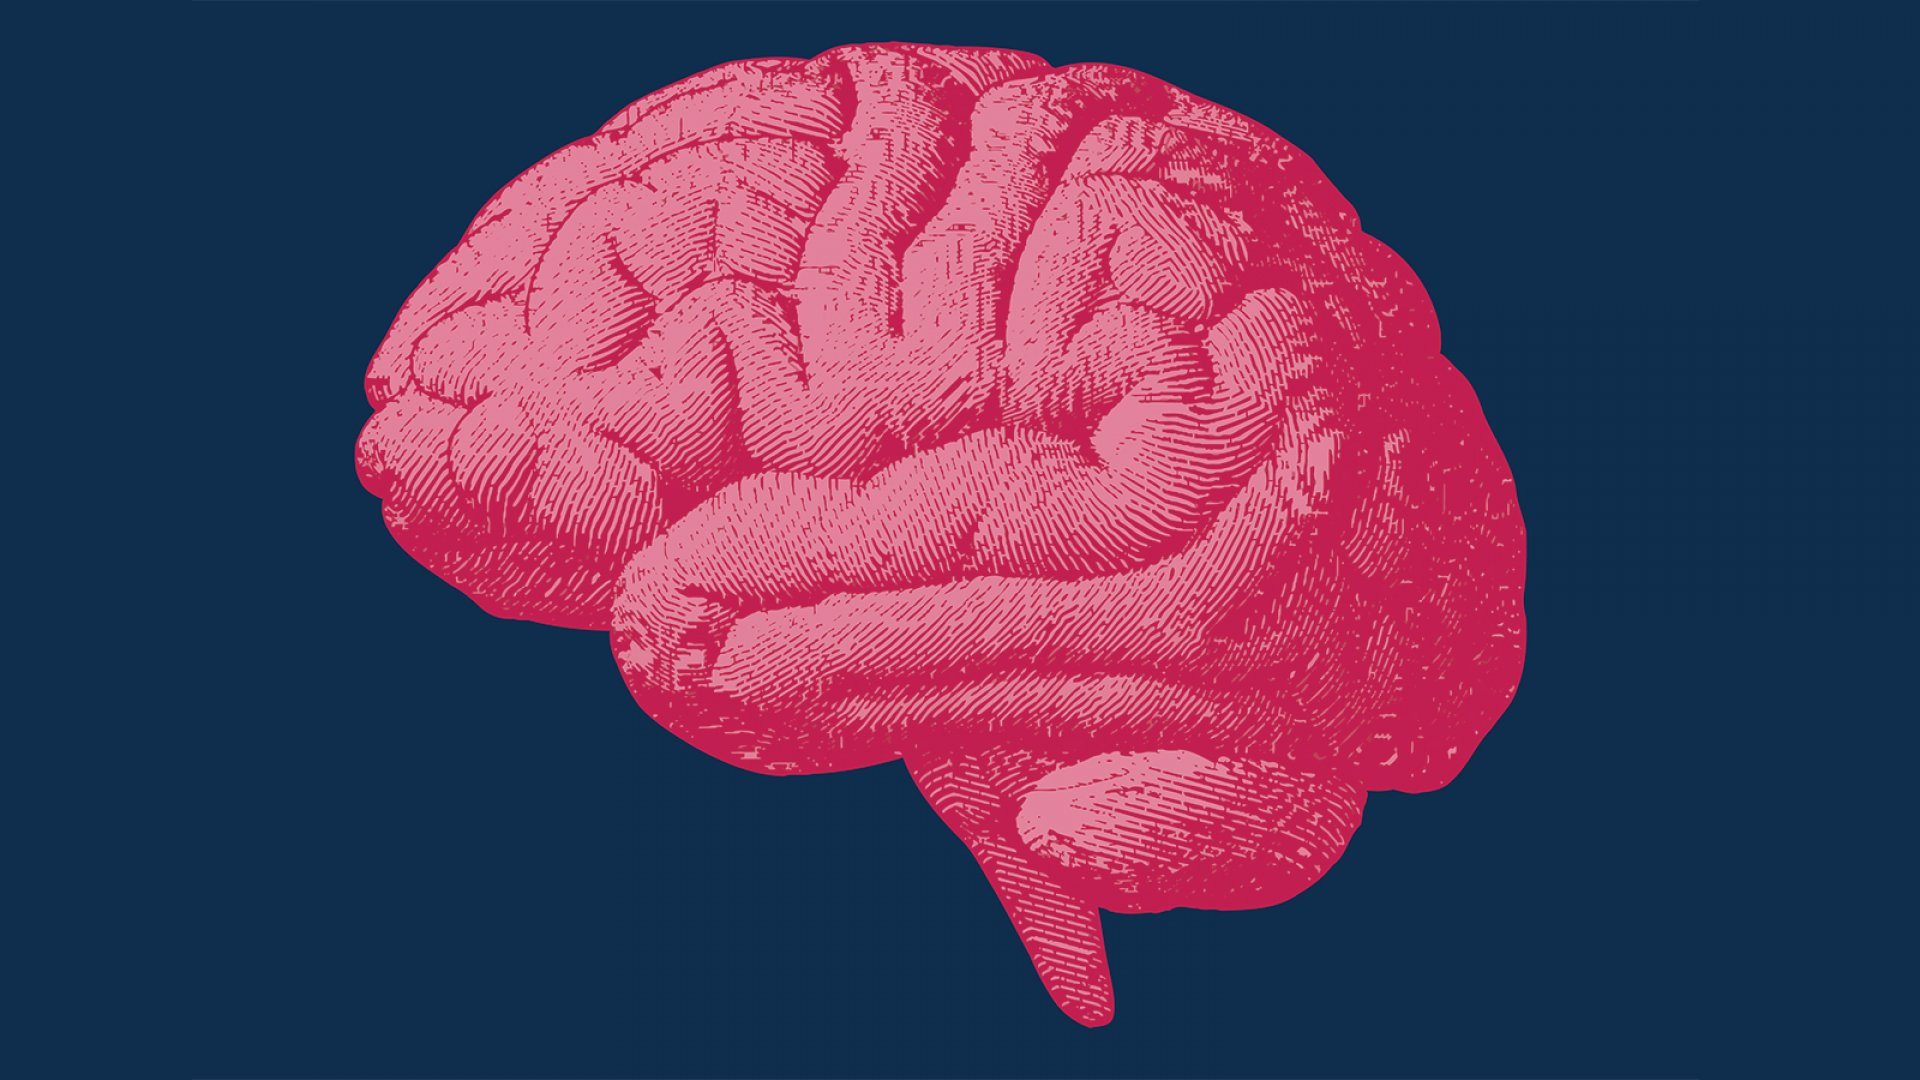 The Research-Backed, 3-Step Method to Hack Your Brain, Break Bad Habits, and Make Better Decisions